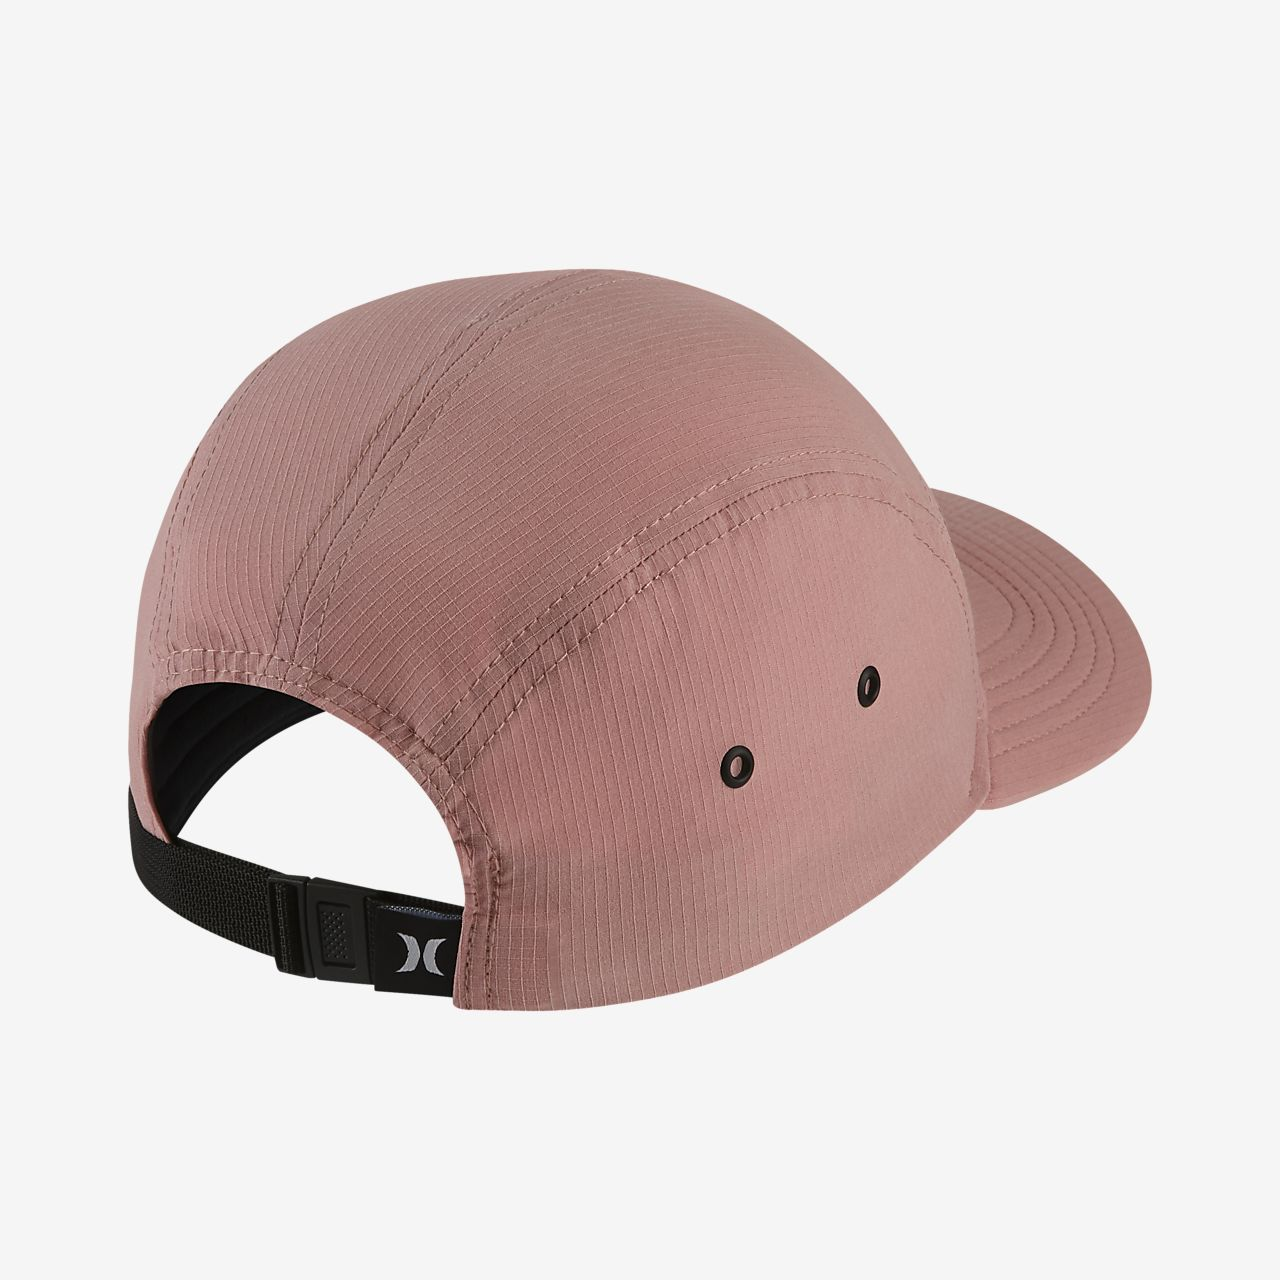 e07ffec2230 Hurley One And Only Women s Adjustable Hat. Nike.com CA